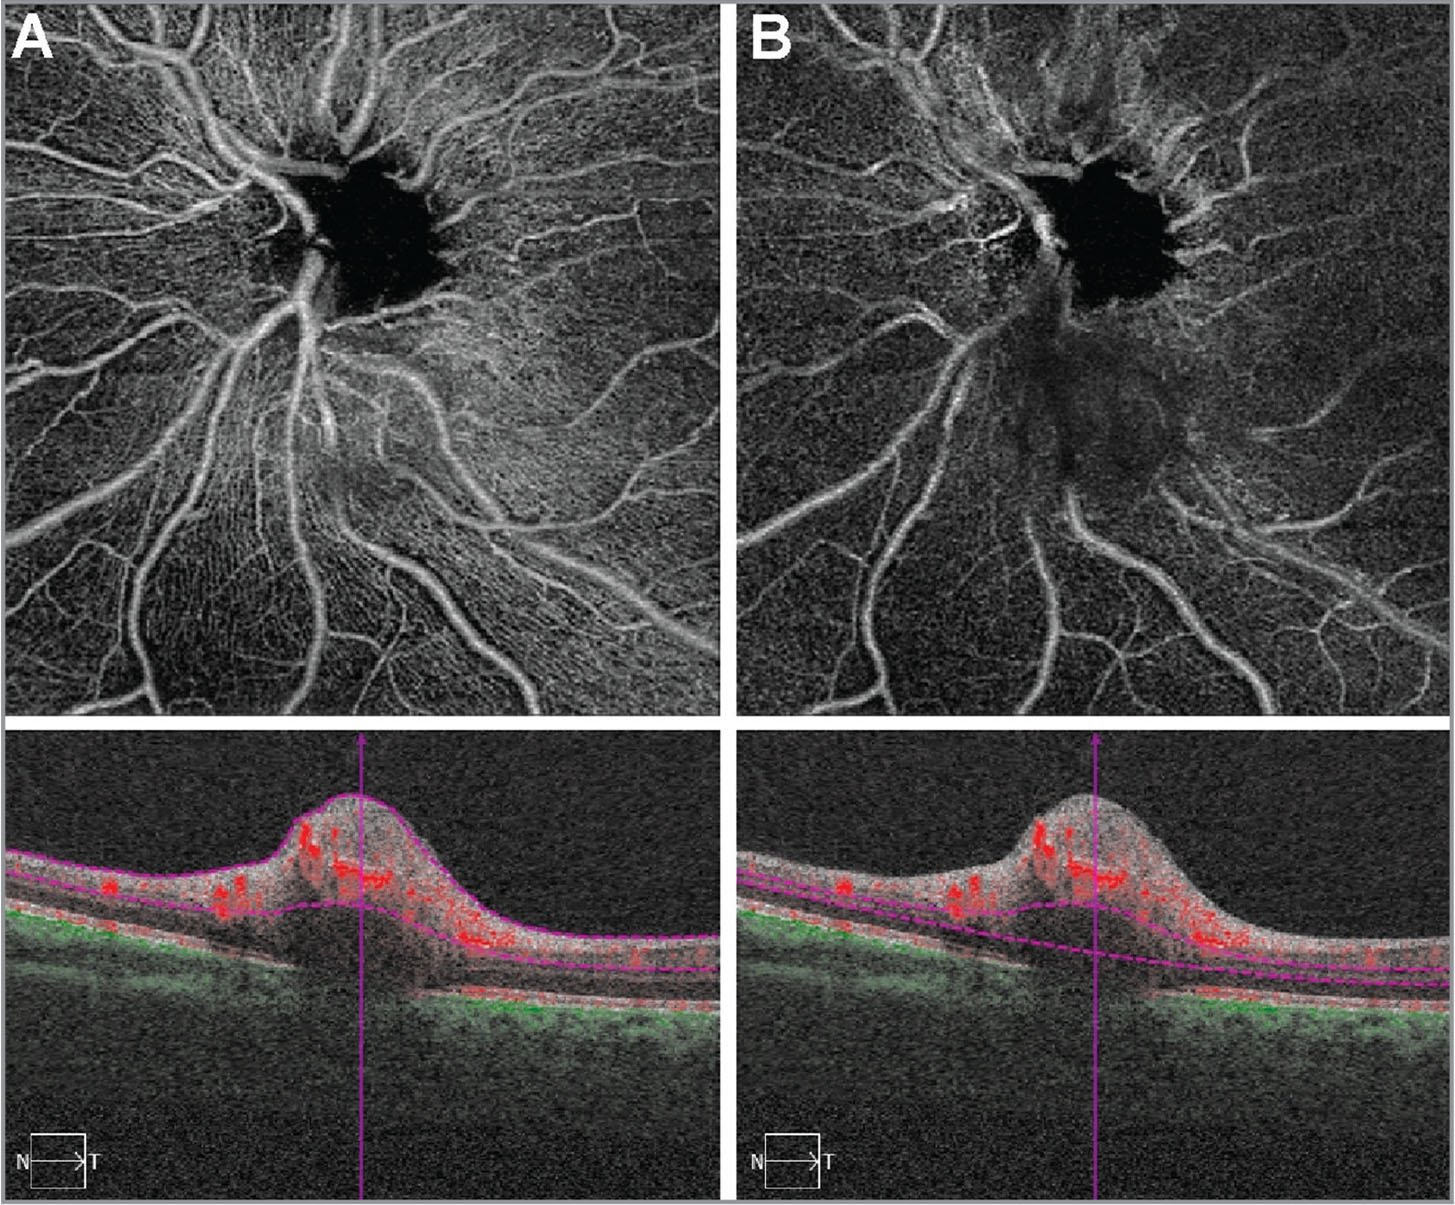 Optical coherence tomography angiography, left eye. In the superficial slab (A) and the deep slab (B), the retinal lesion inferior to the optic disc shows intrinsic vascularity but no feeder vessel.